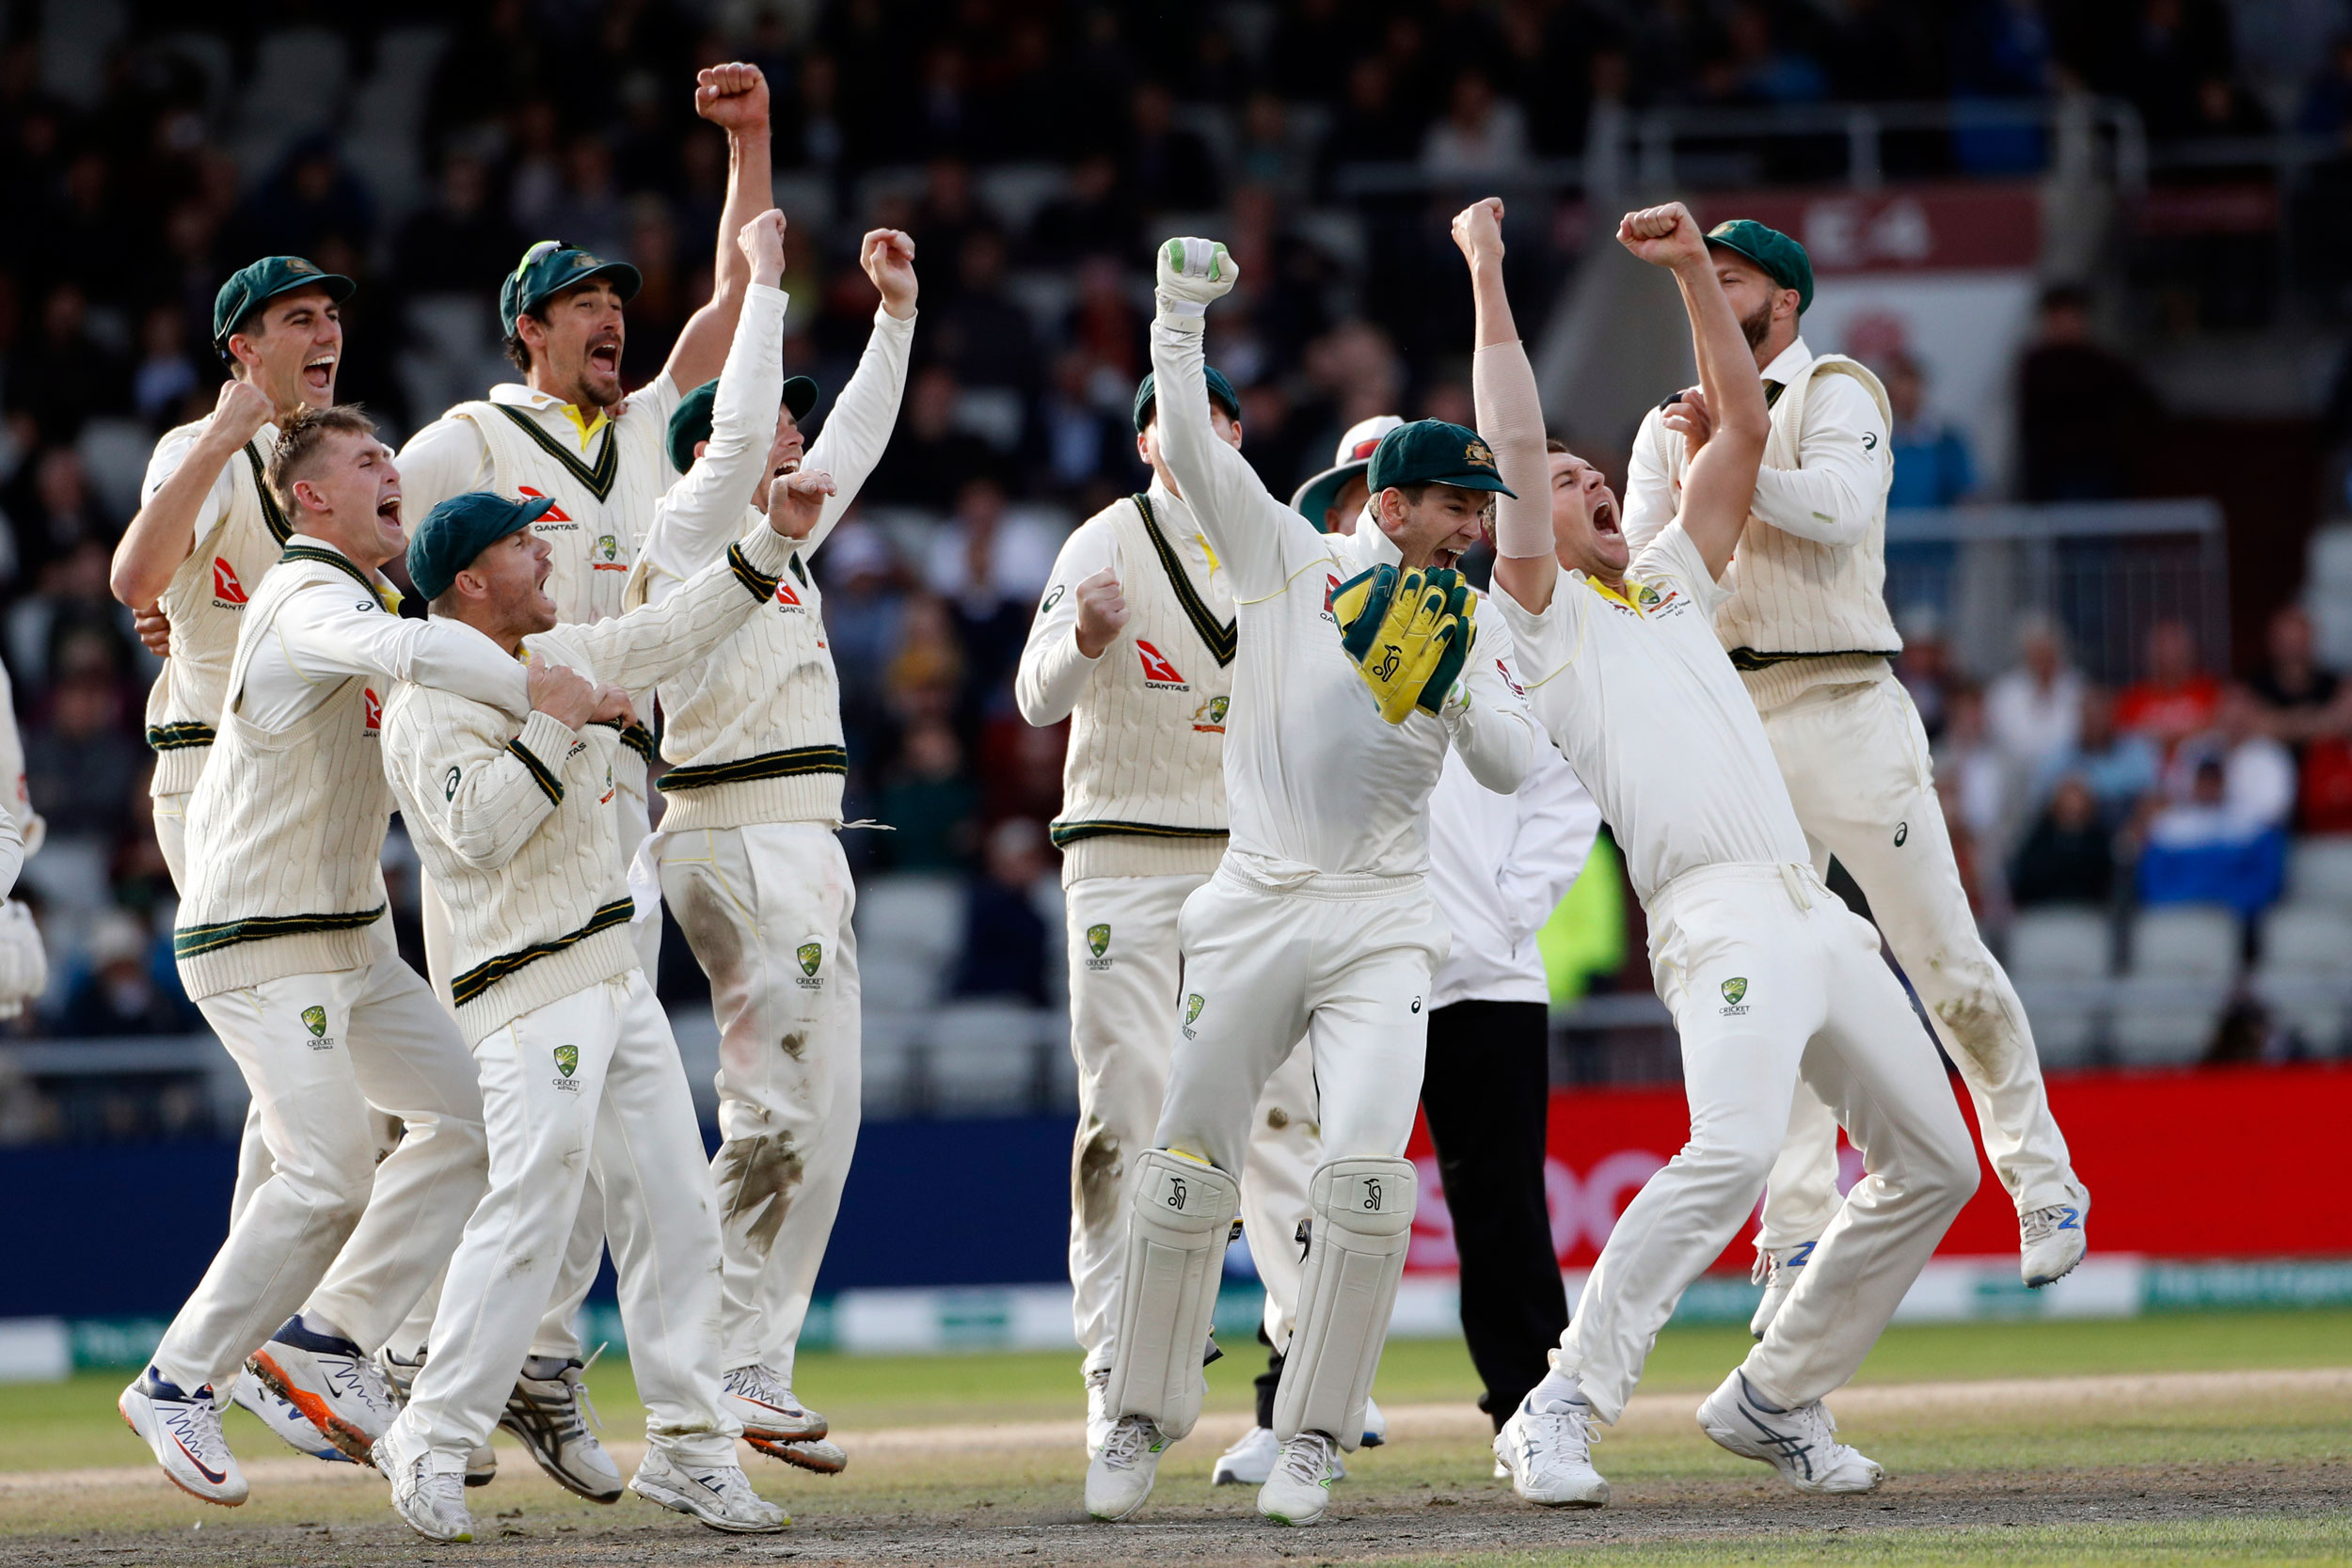 Australian players celebrate after winning the fourth test and retaining the Ashes during day five of the fourth Ashes Test cricket match between England and Australia at Old Trafford in Manchester, England, September 8, 2019.